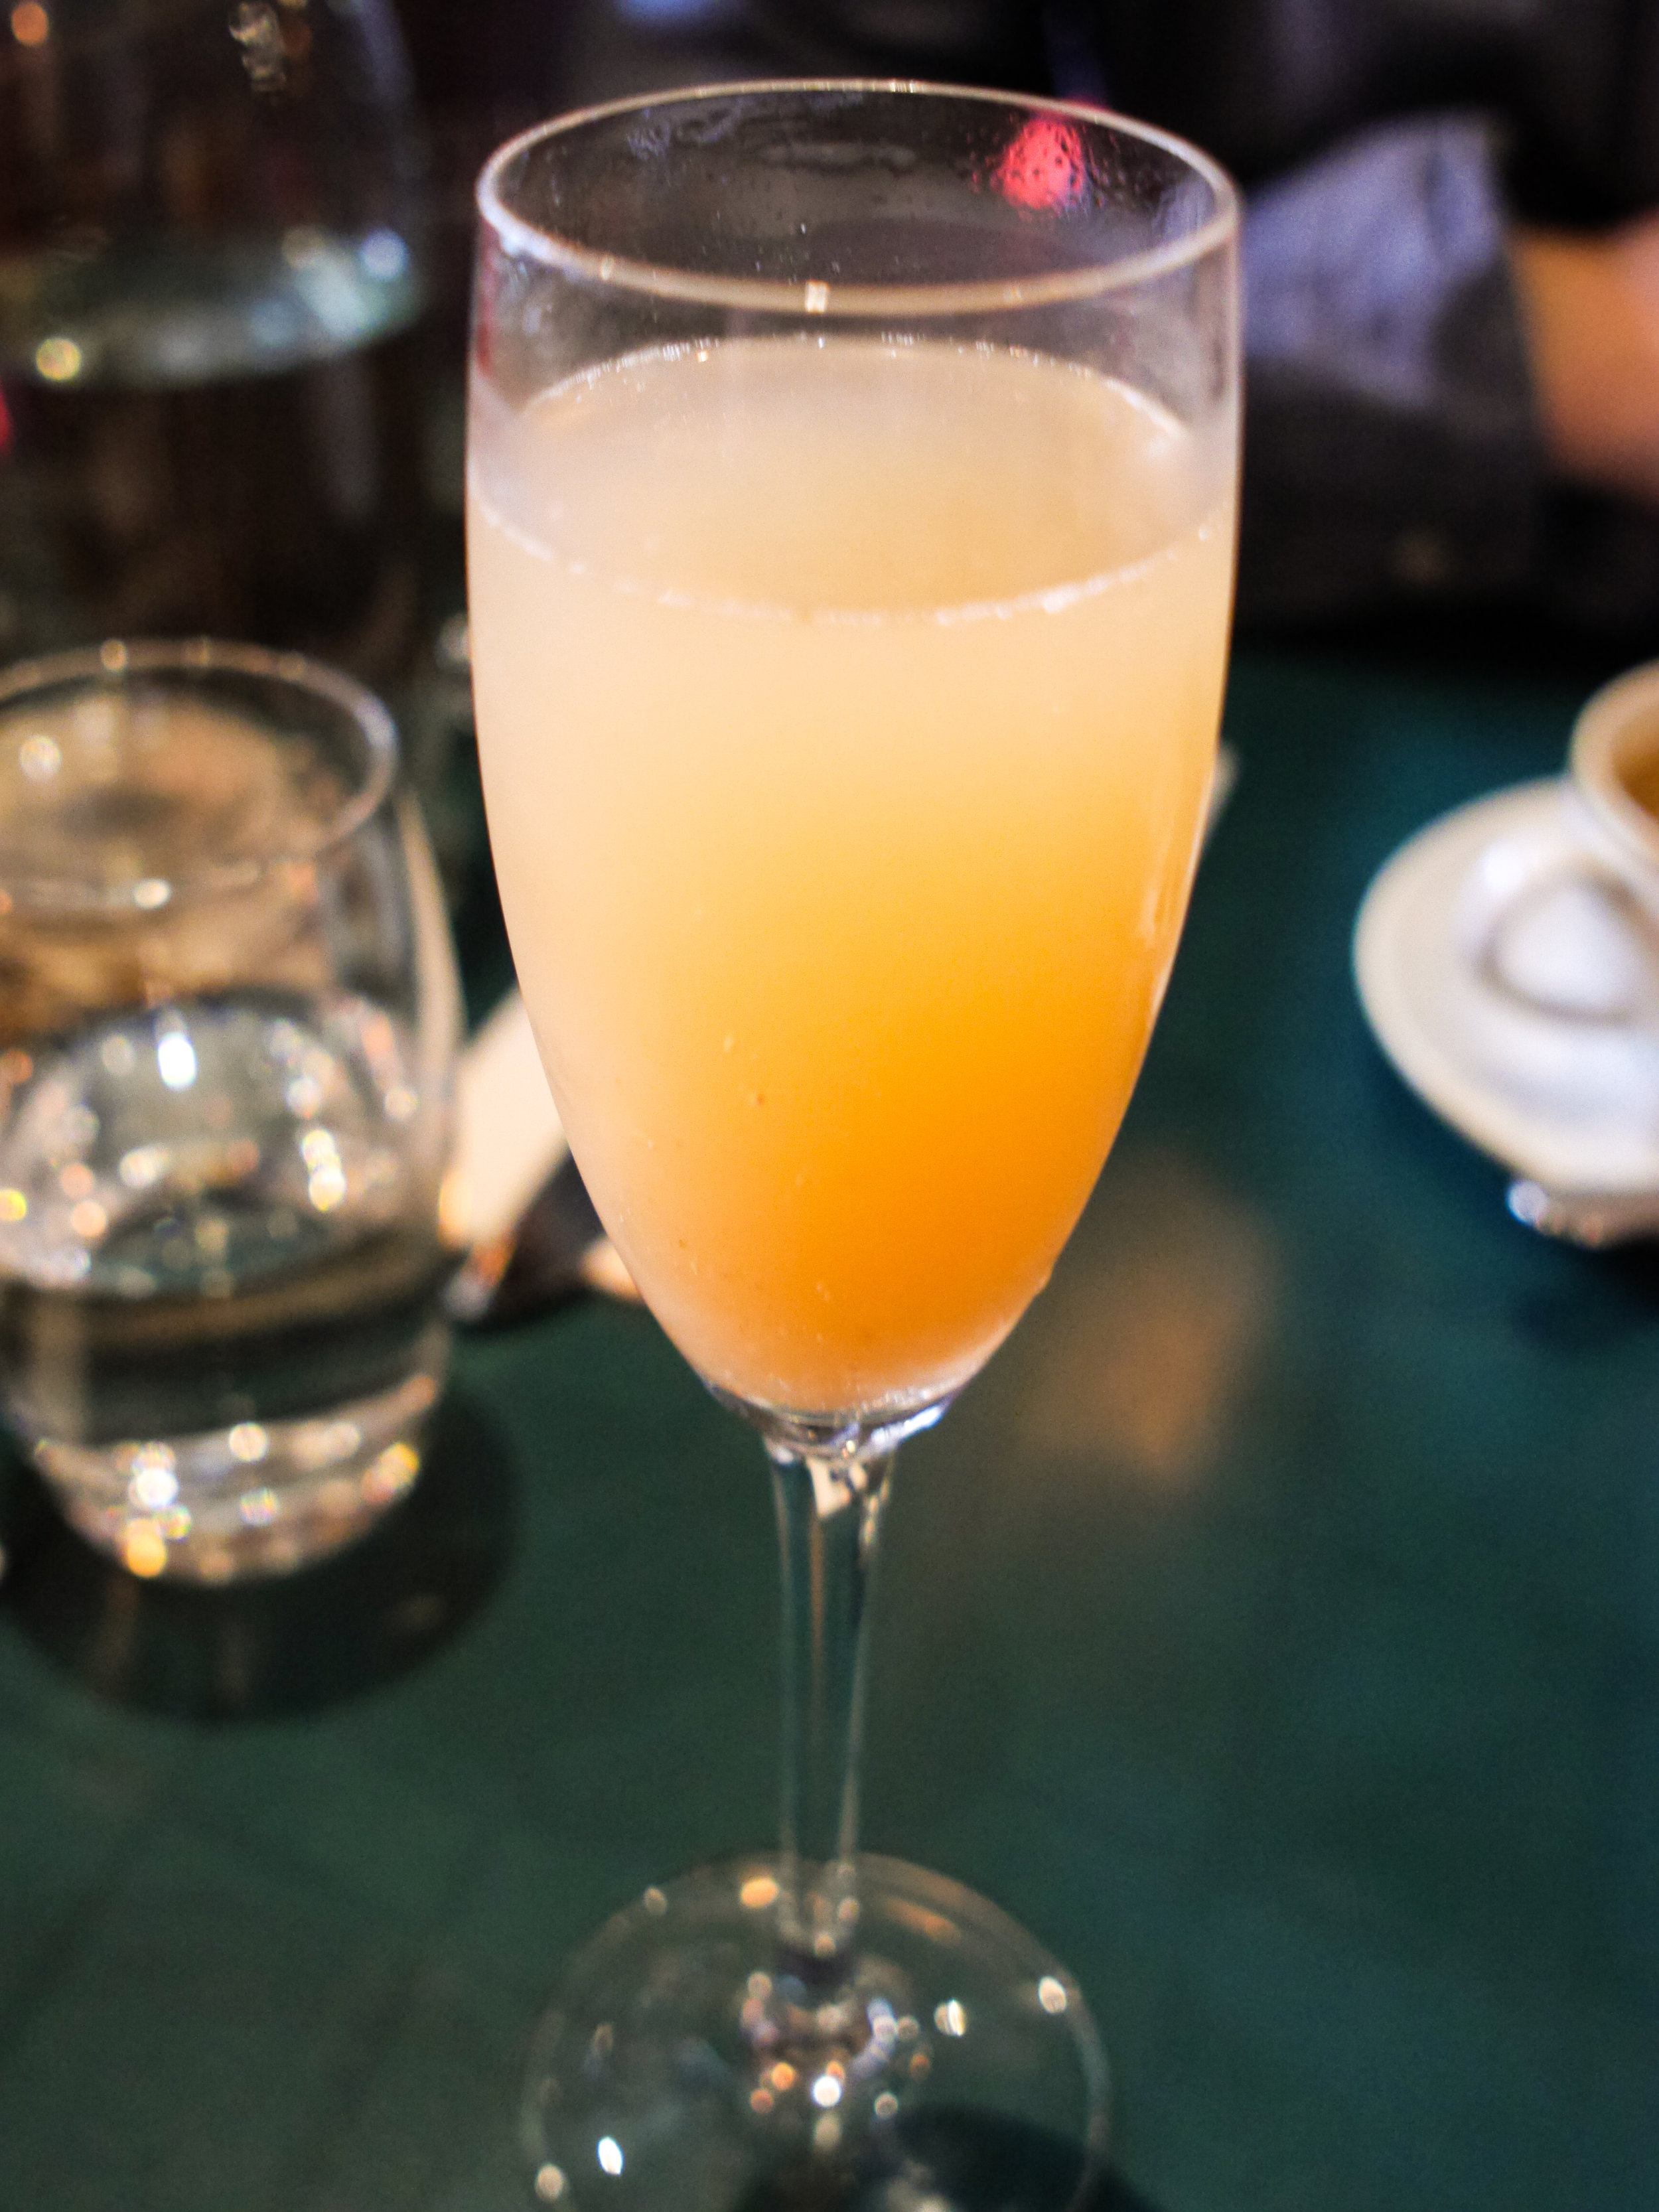 Peach bellini at San Lorenzo's in Dublin, Ireland